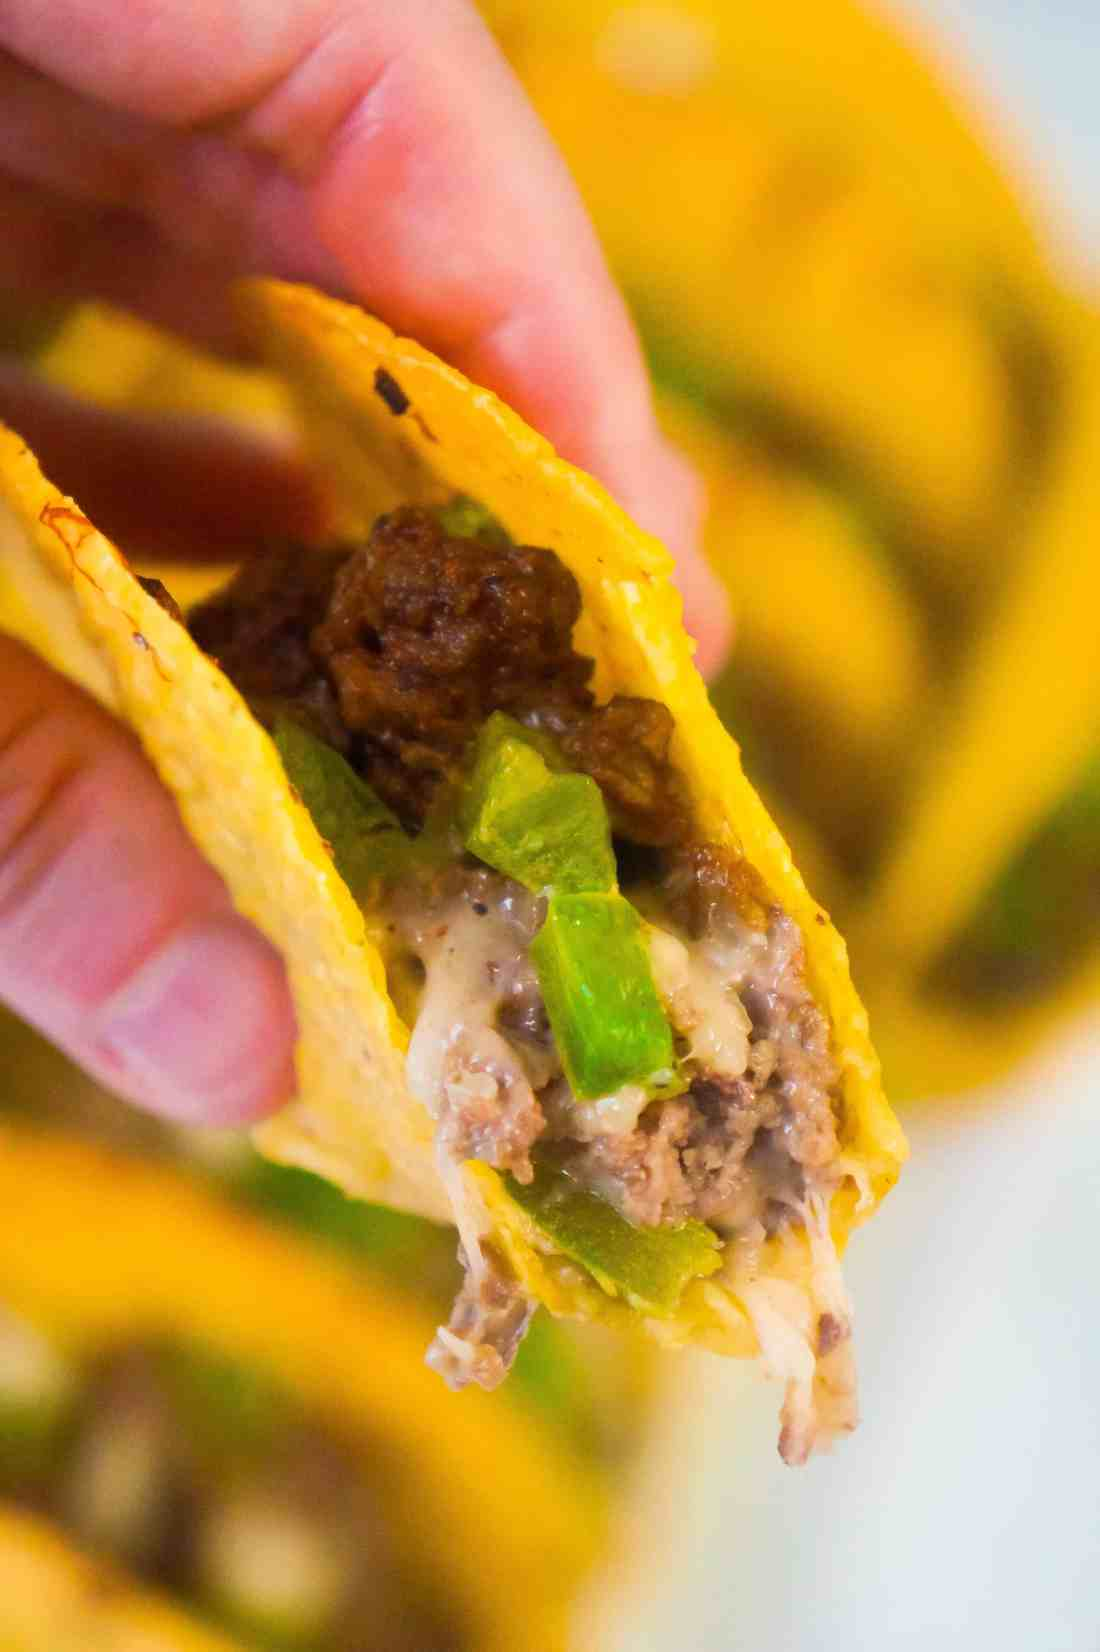 Philly Cheese Steak Tacos are an easy ground beef dinner recipe using Stand and Stuff taco shells.